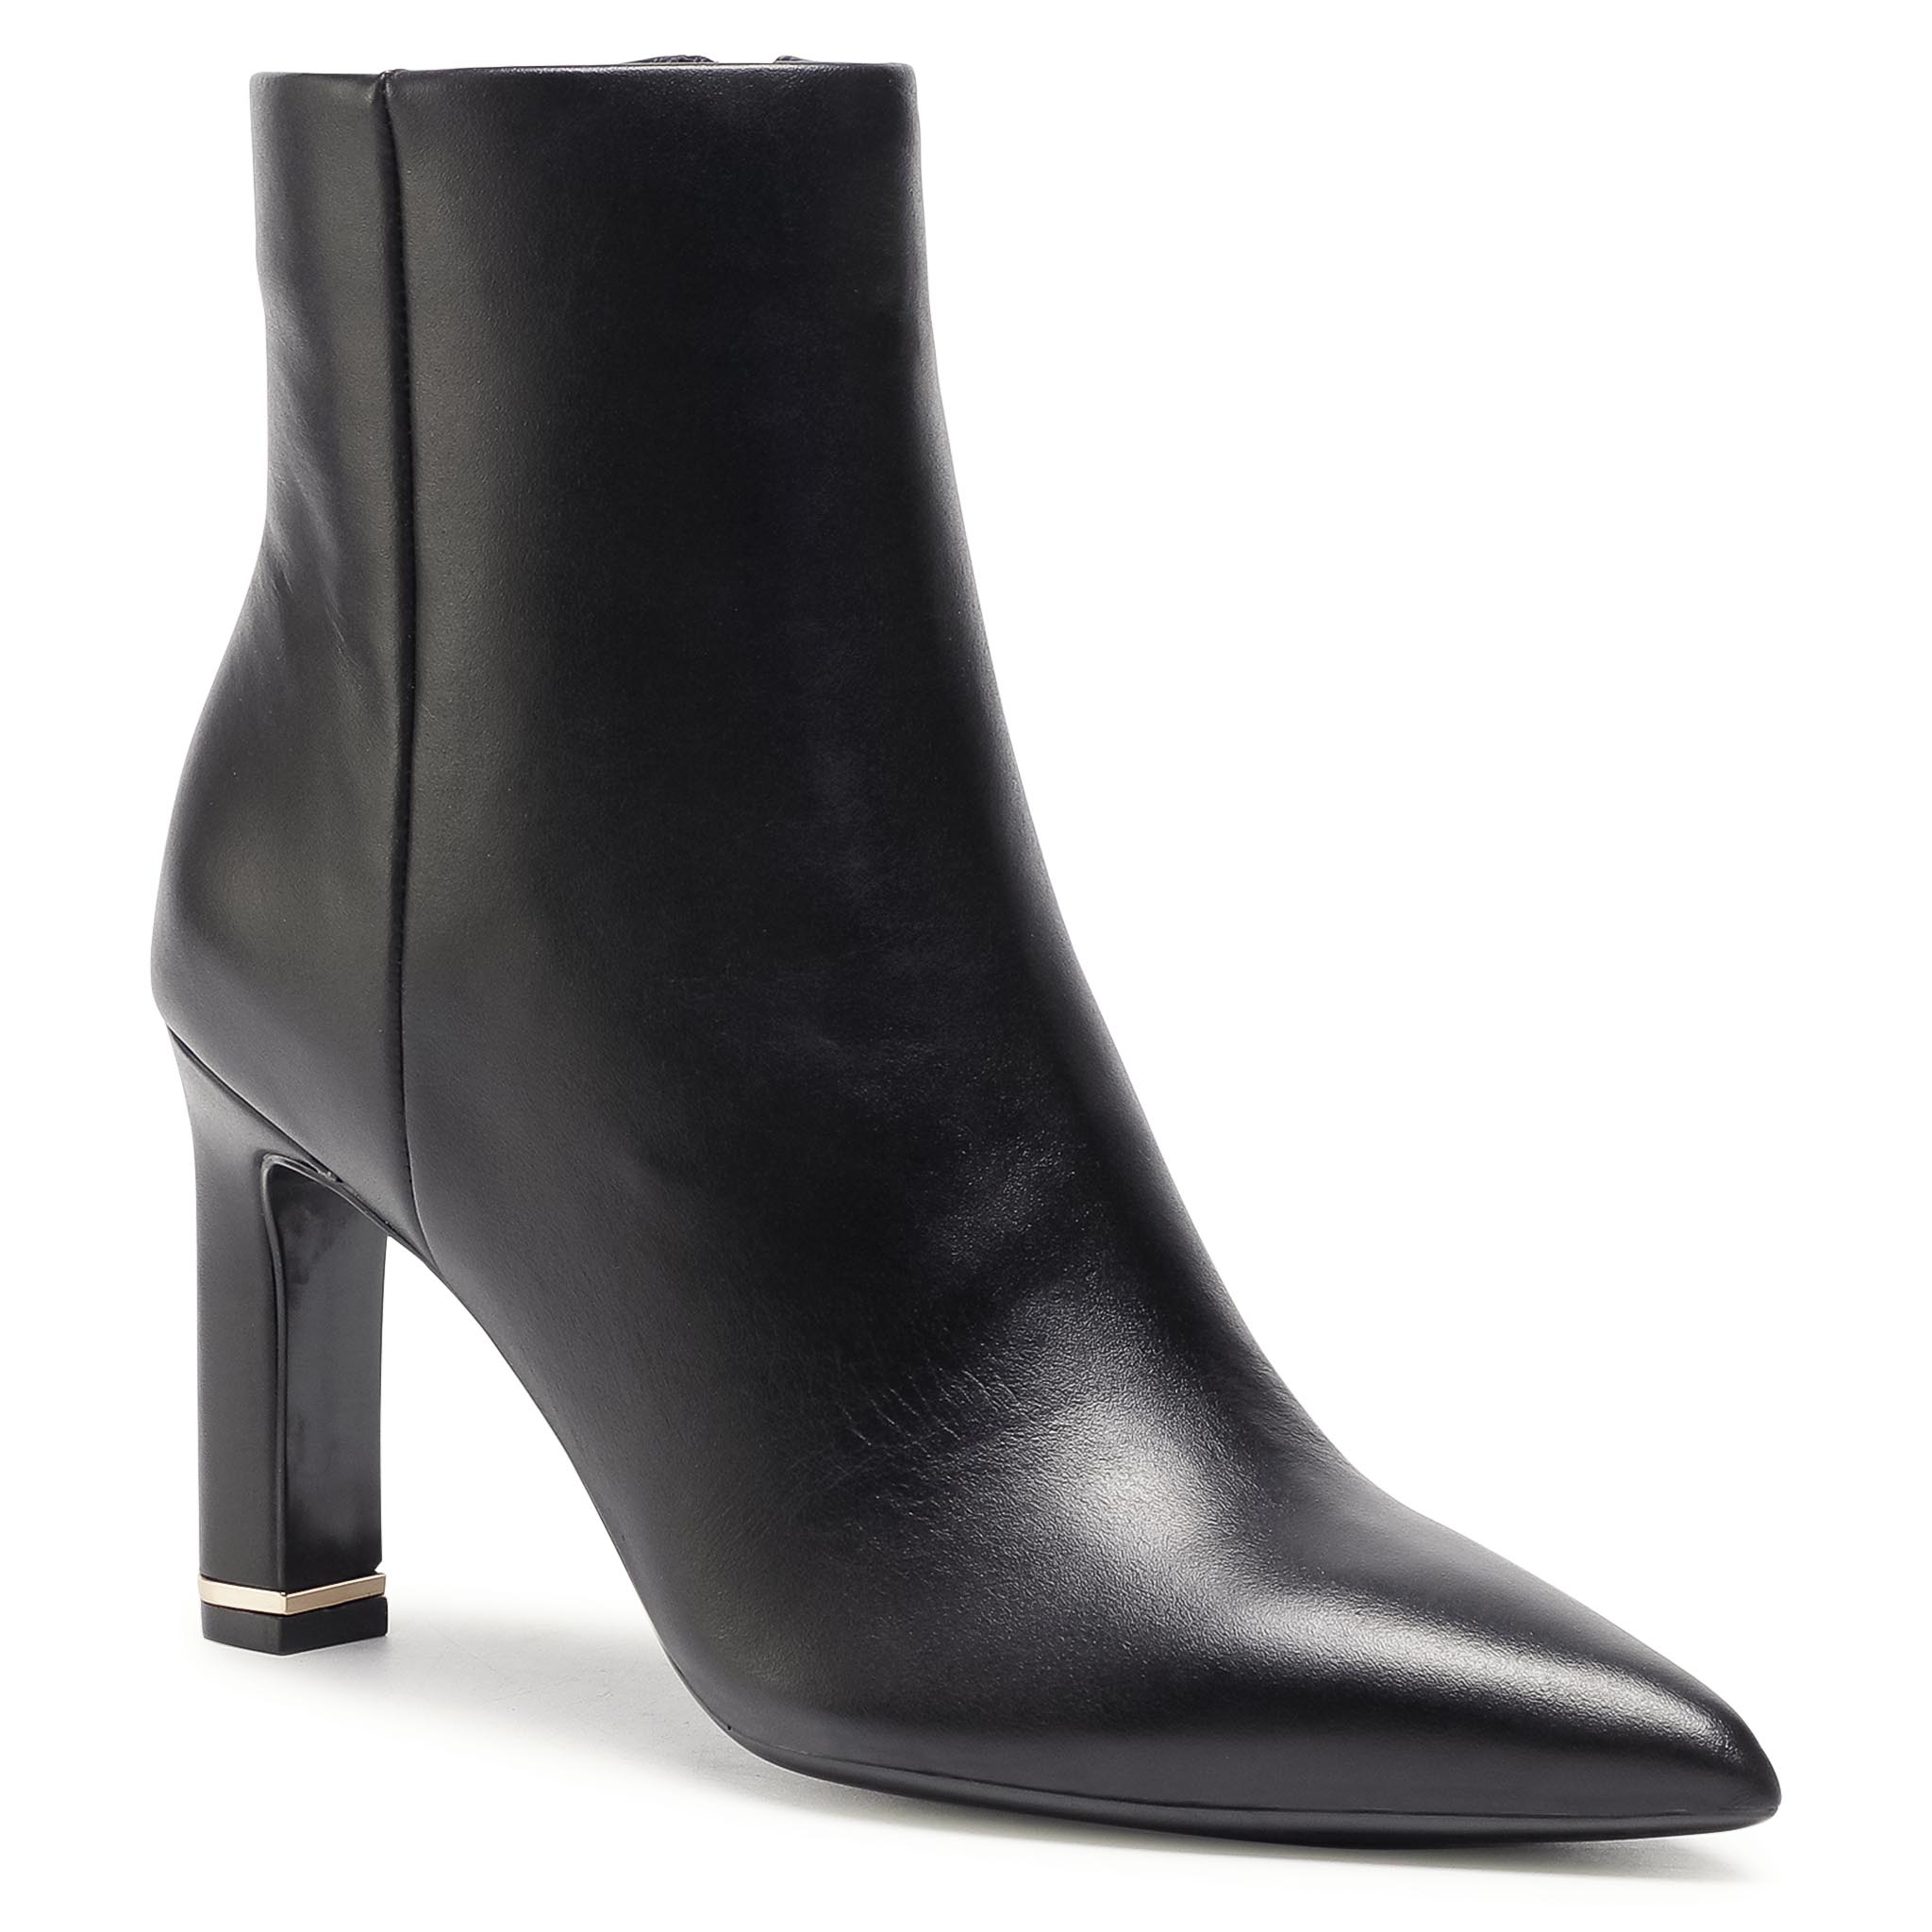 Bottines CALVIN KLEIN - Roselina B4E00324 Black